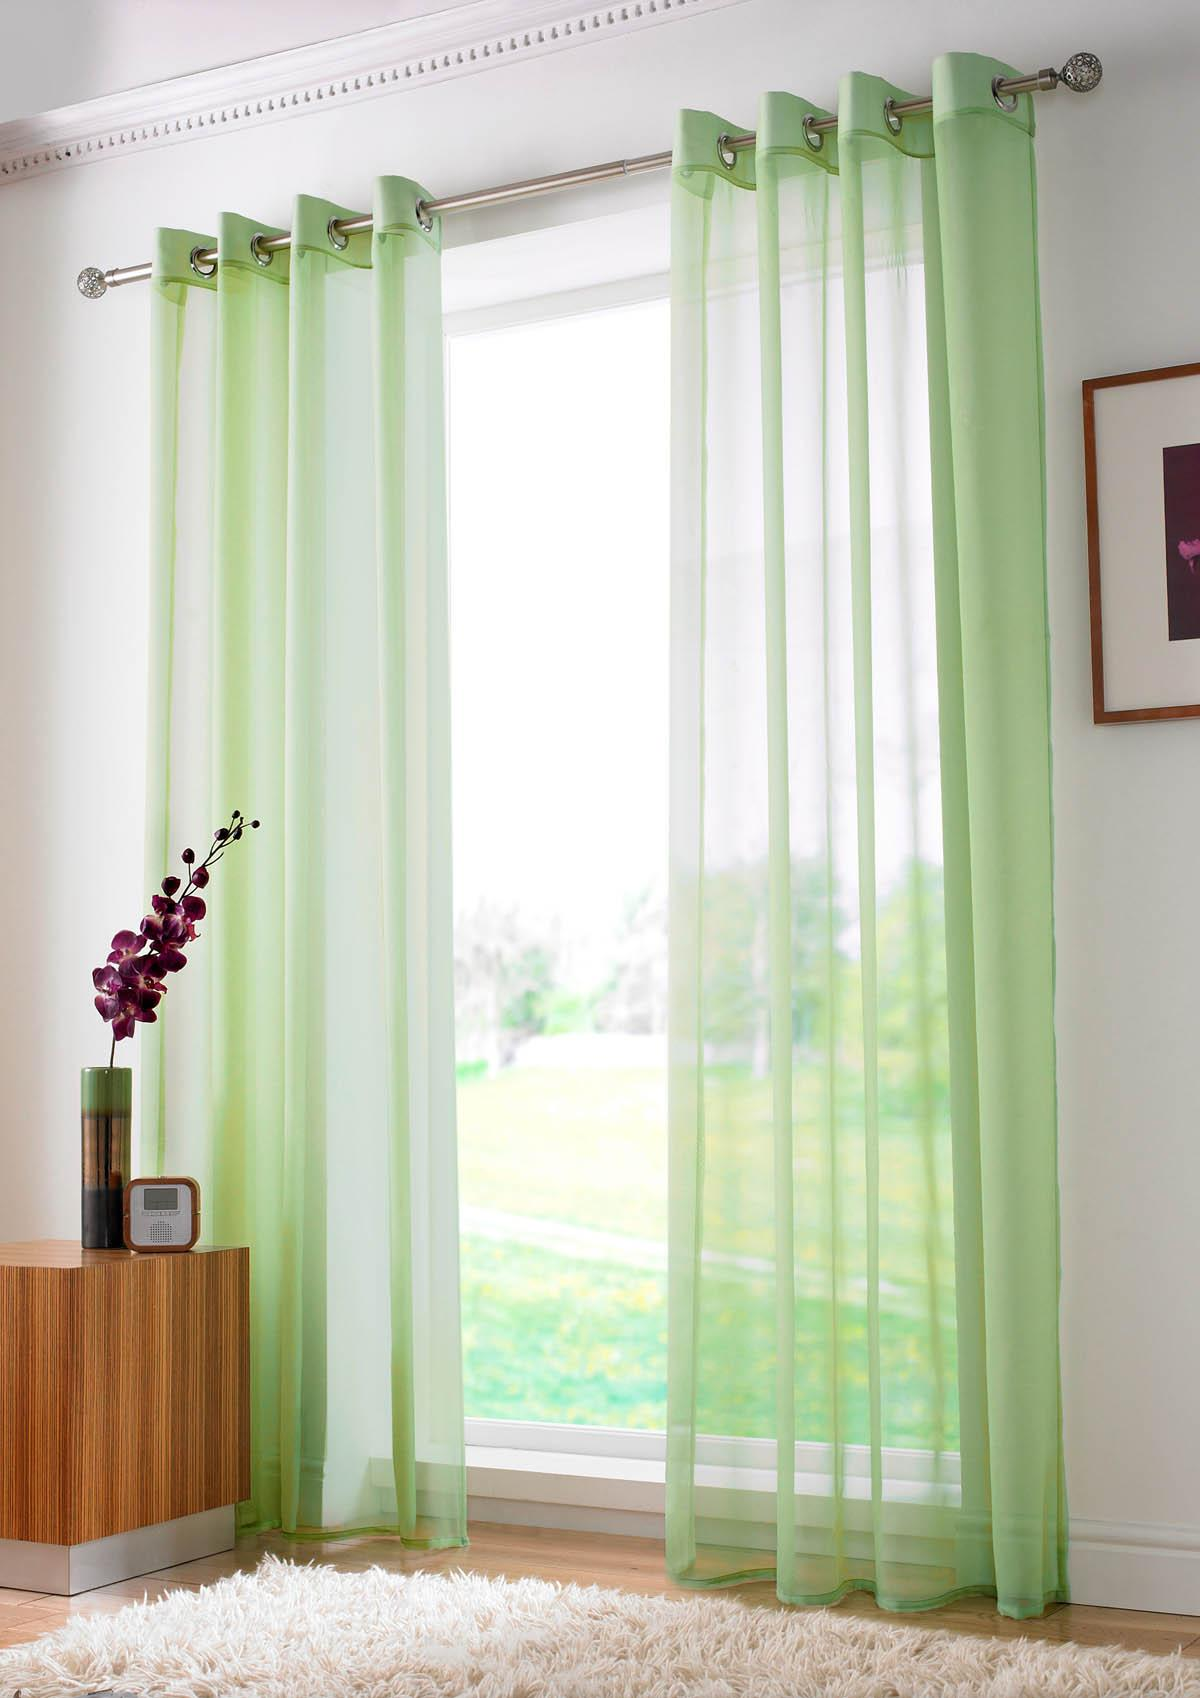 Slot top voile pair olive cheap green curtain voile uk delivery - Plain Ring Top Voile Lime Uk Delivery Terrys Fabrics